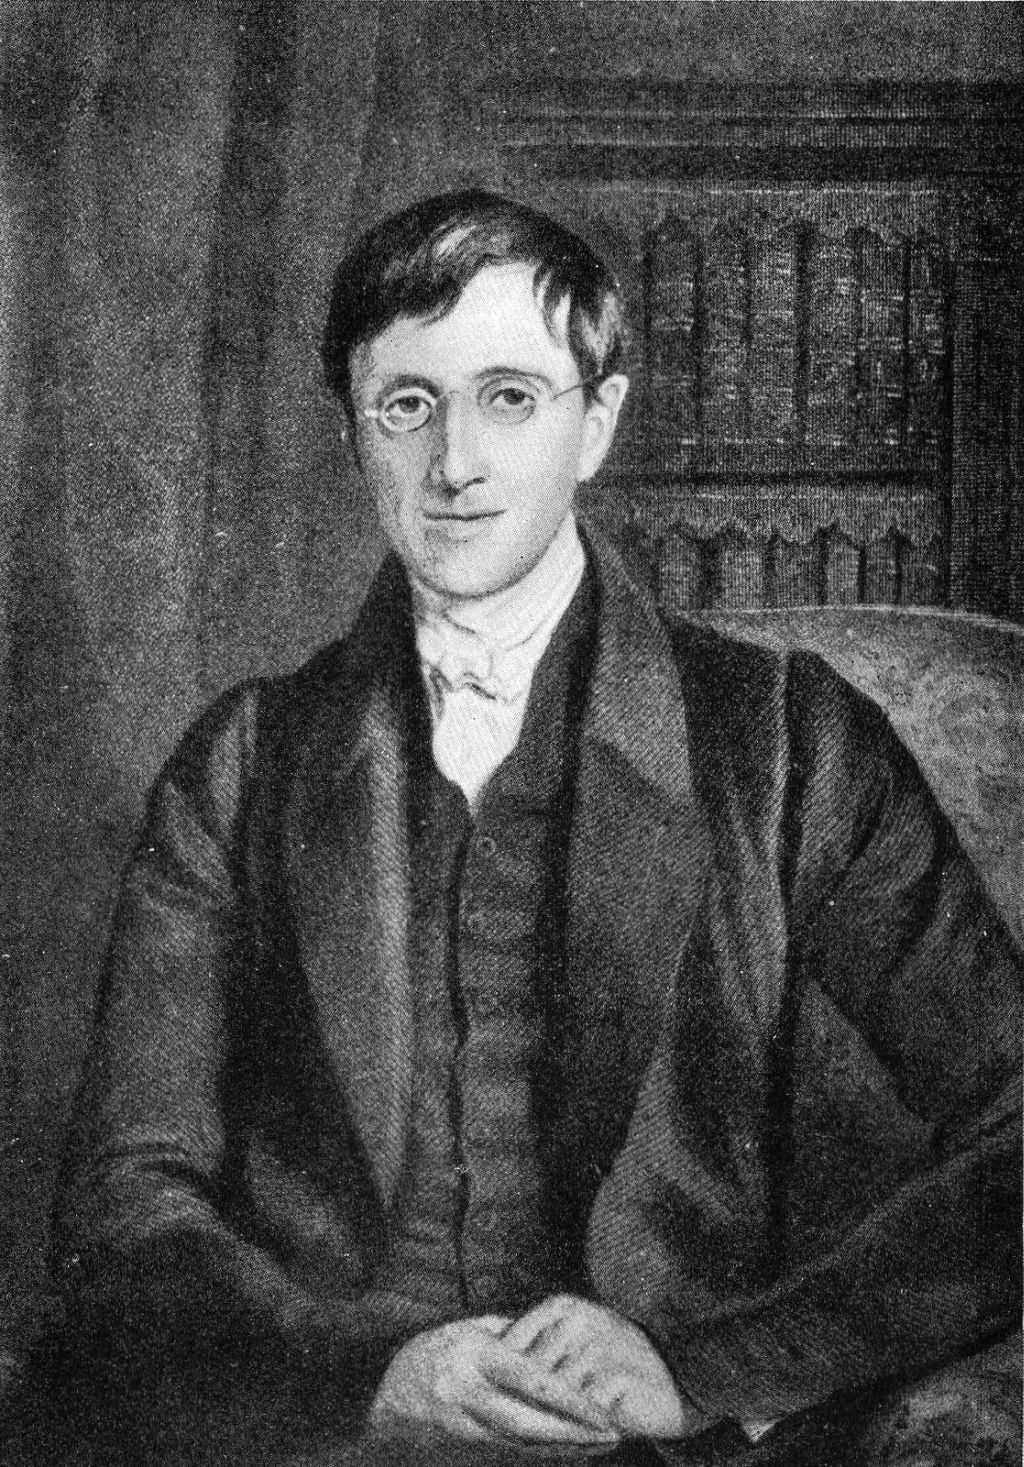 From the portrait by Sir W. Ross